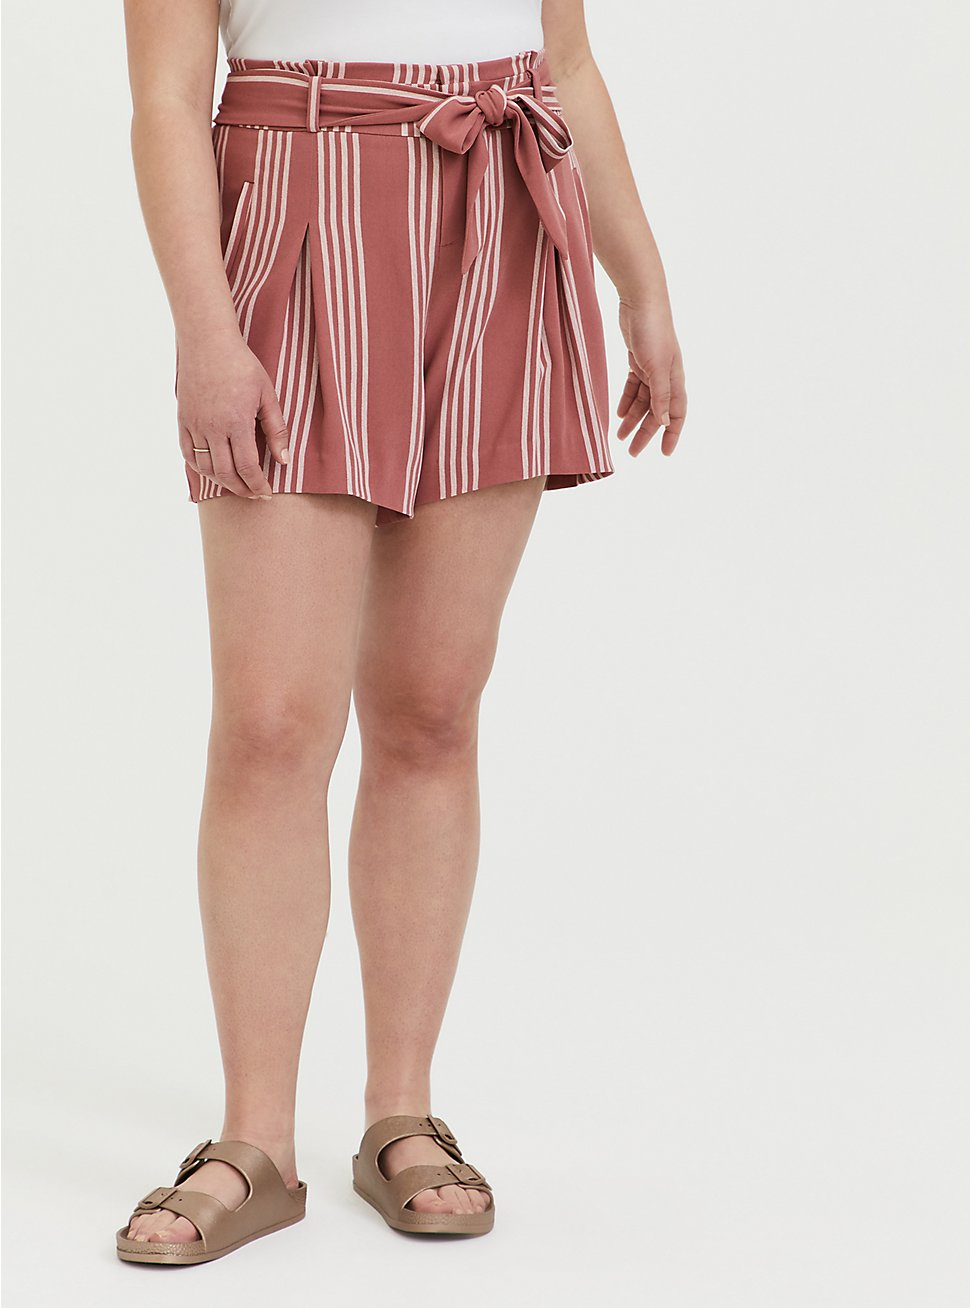 Self Tie Mid Short - Stripe Dusty Rose, STRIPES, hi-res